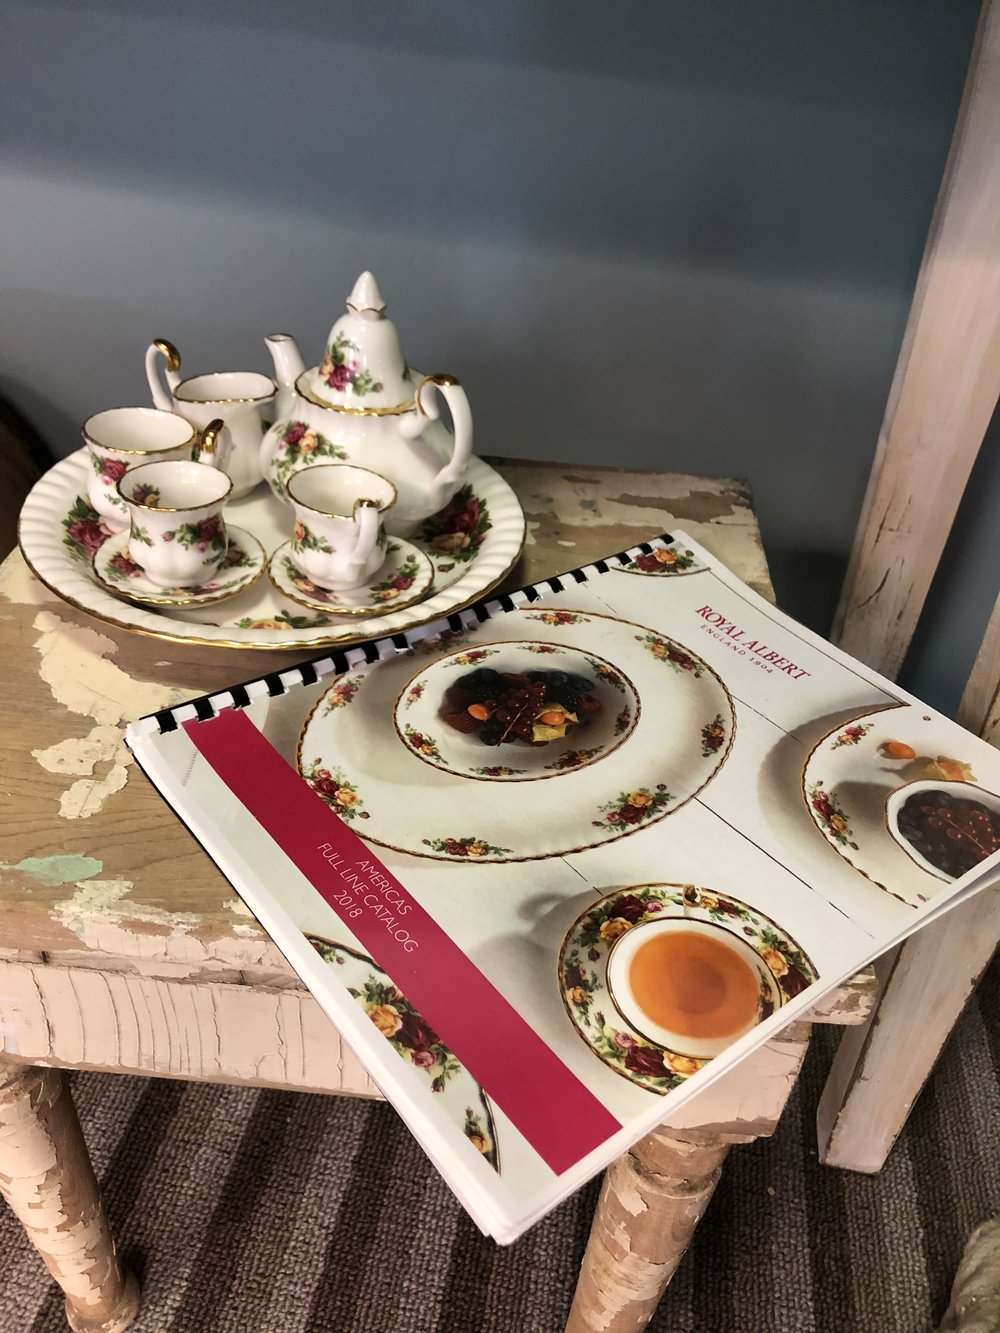 Shop Royal Albert China. Whether you are finishing your collection or looking to start a bridal registry, Polly Claire's Gift Shop offers the luxury of being able to see and feel each piece of china as Polly Claire's is the only contracted Royal Albert distributor in the Chattanooga area.  -